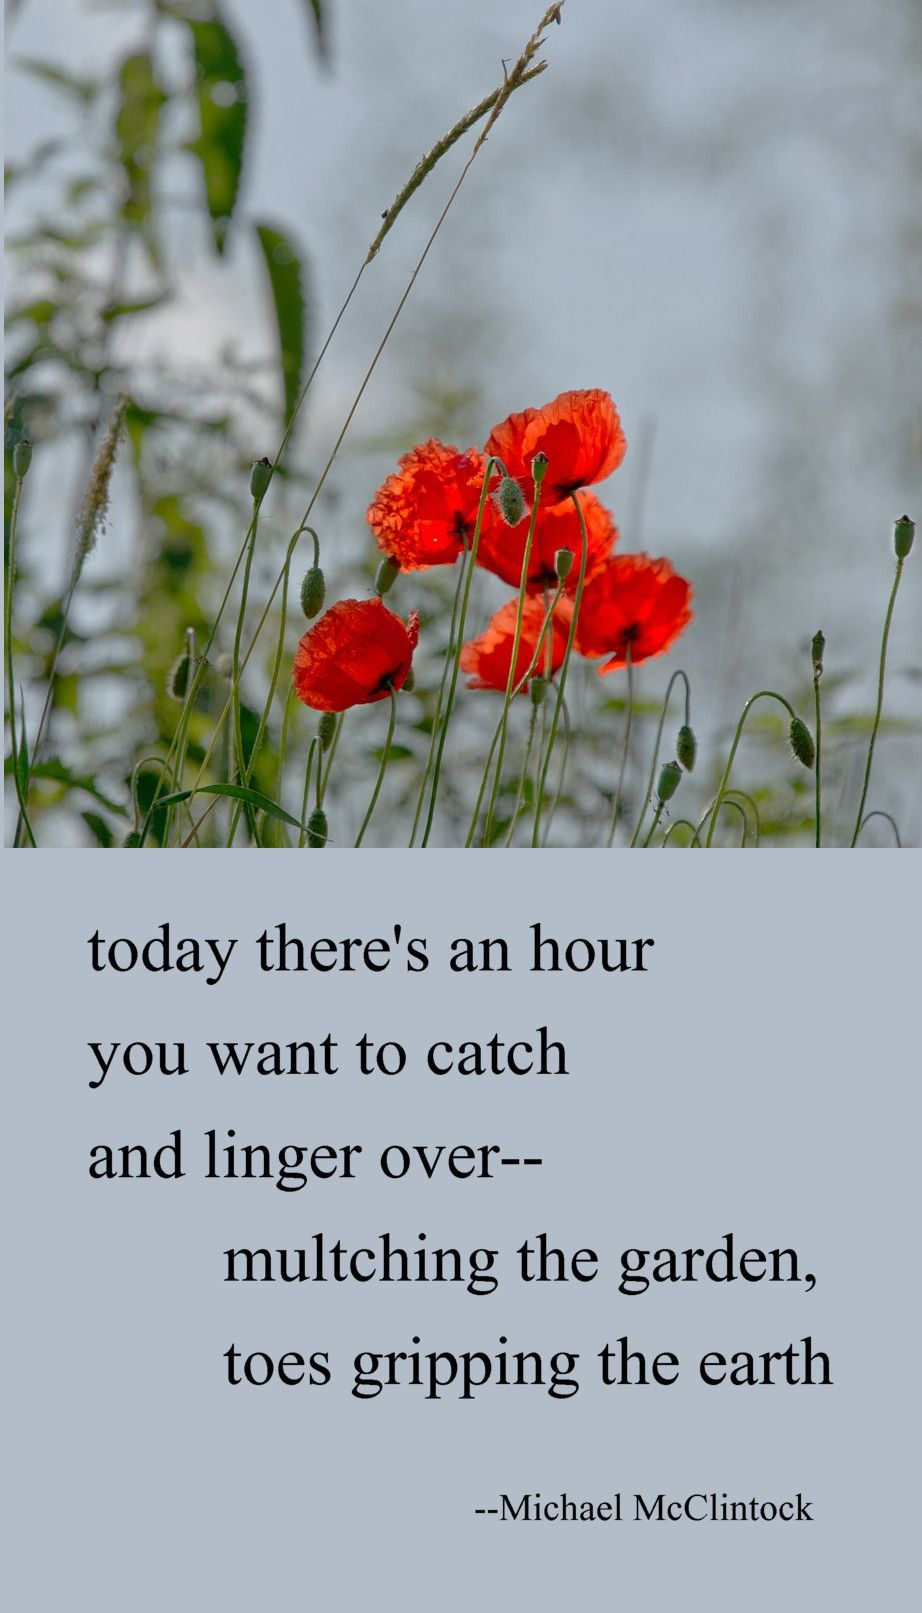 Tanka poem todays there's an hour by Michael